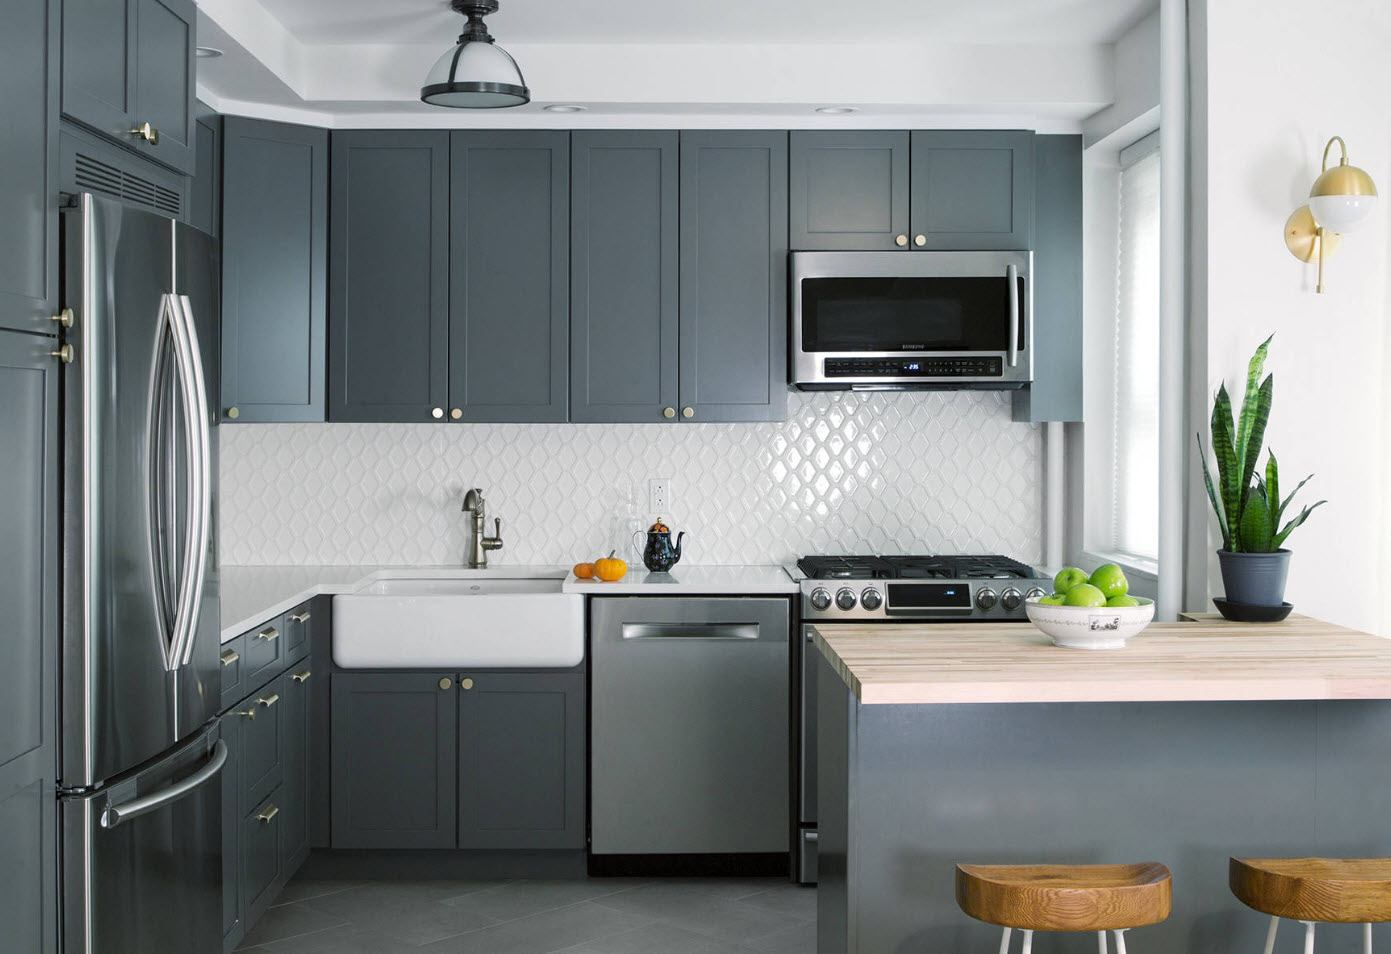 Gray kitchen facades of modular designed cabinets